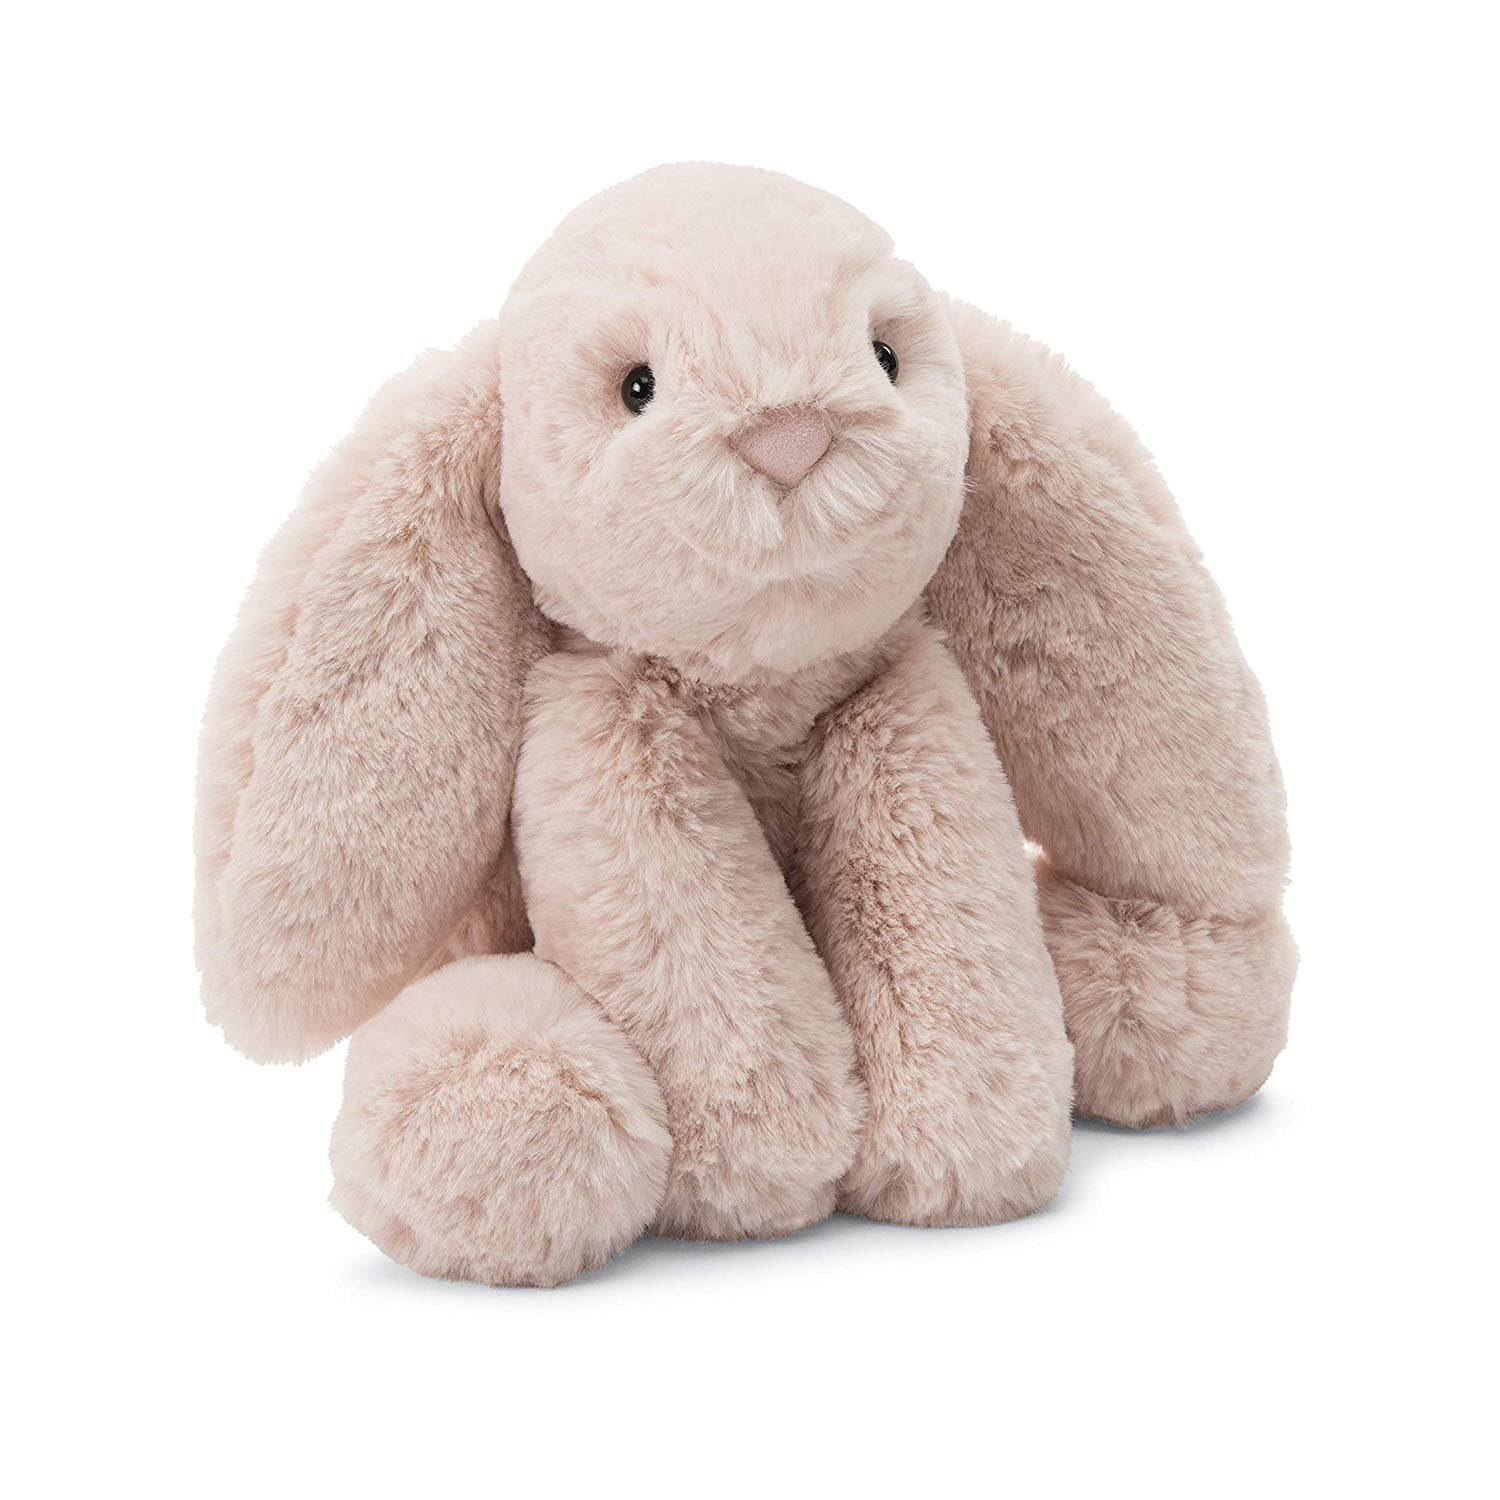 smudge rabbit stuffed animal